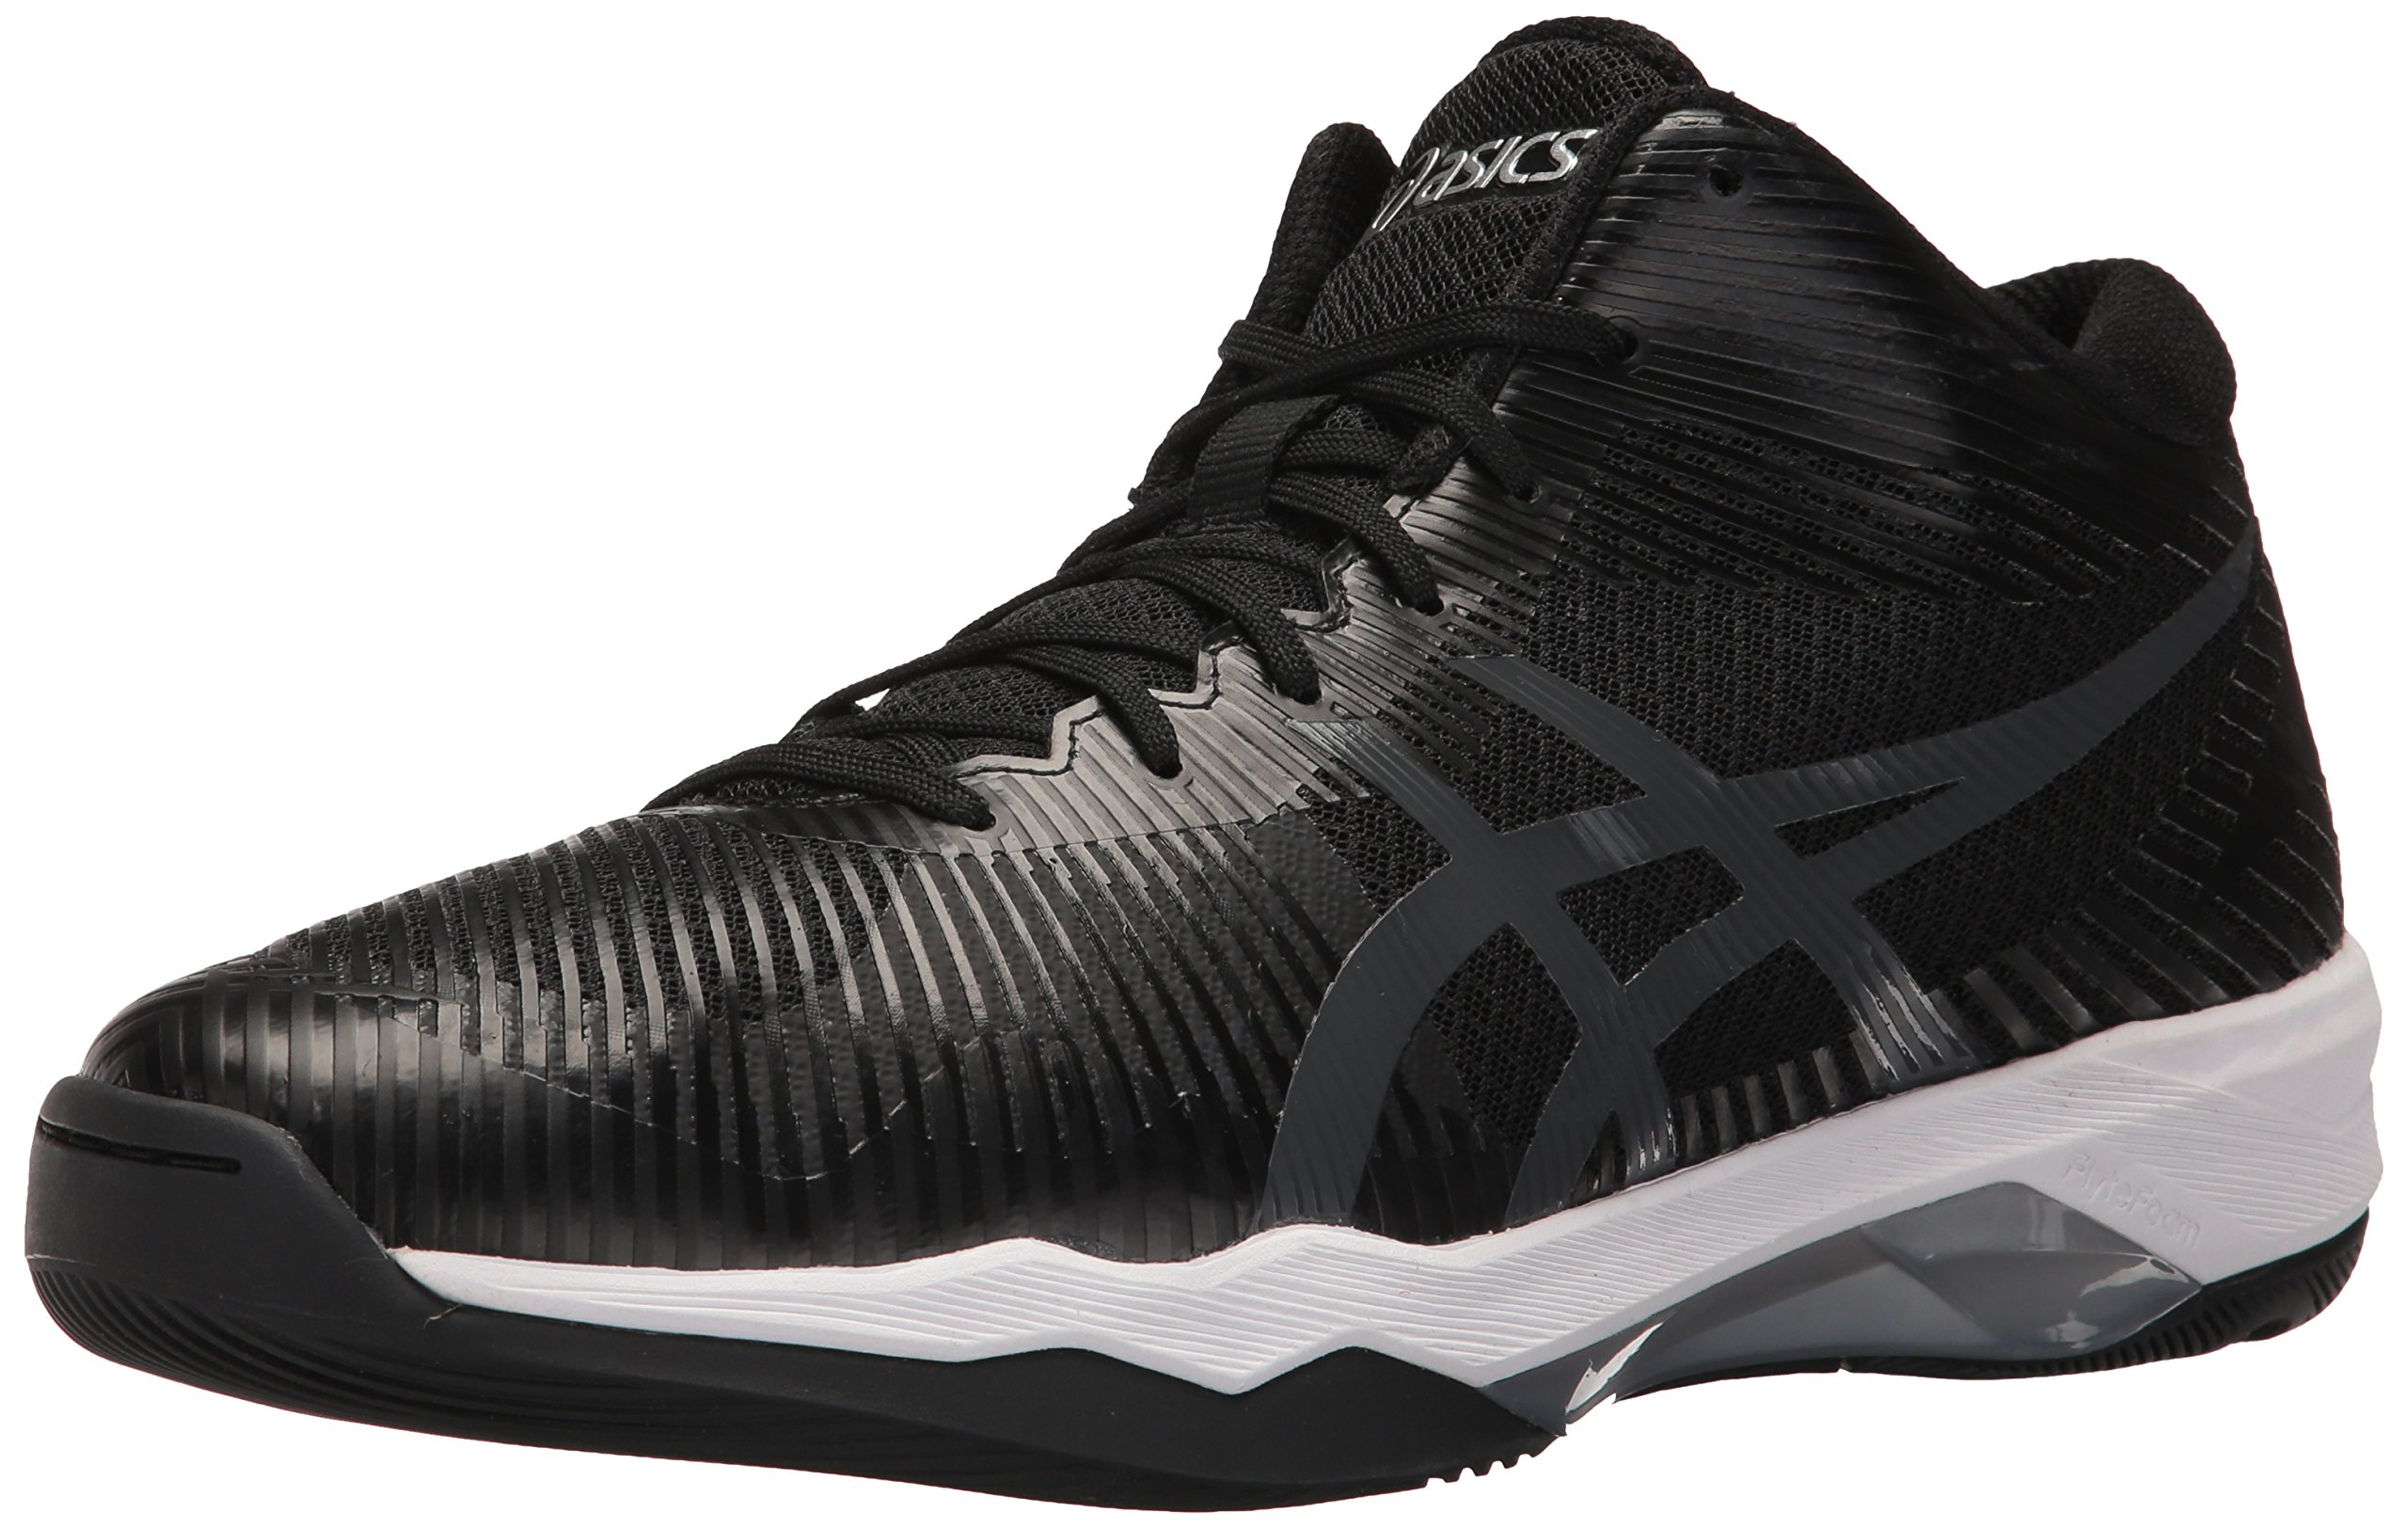 ASICS Men's Volley Elite FF MT Volleyball Shoe, Black/Dark Grey/White, 6.5 Medium US